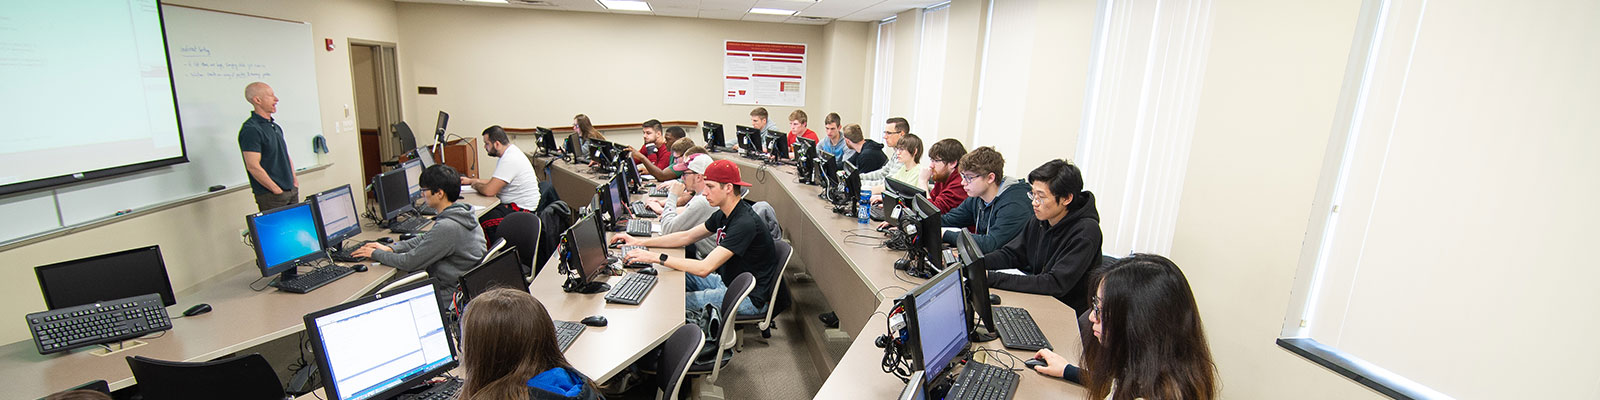 Class in a computer lab